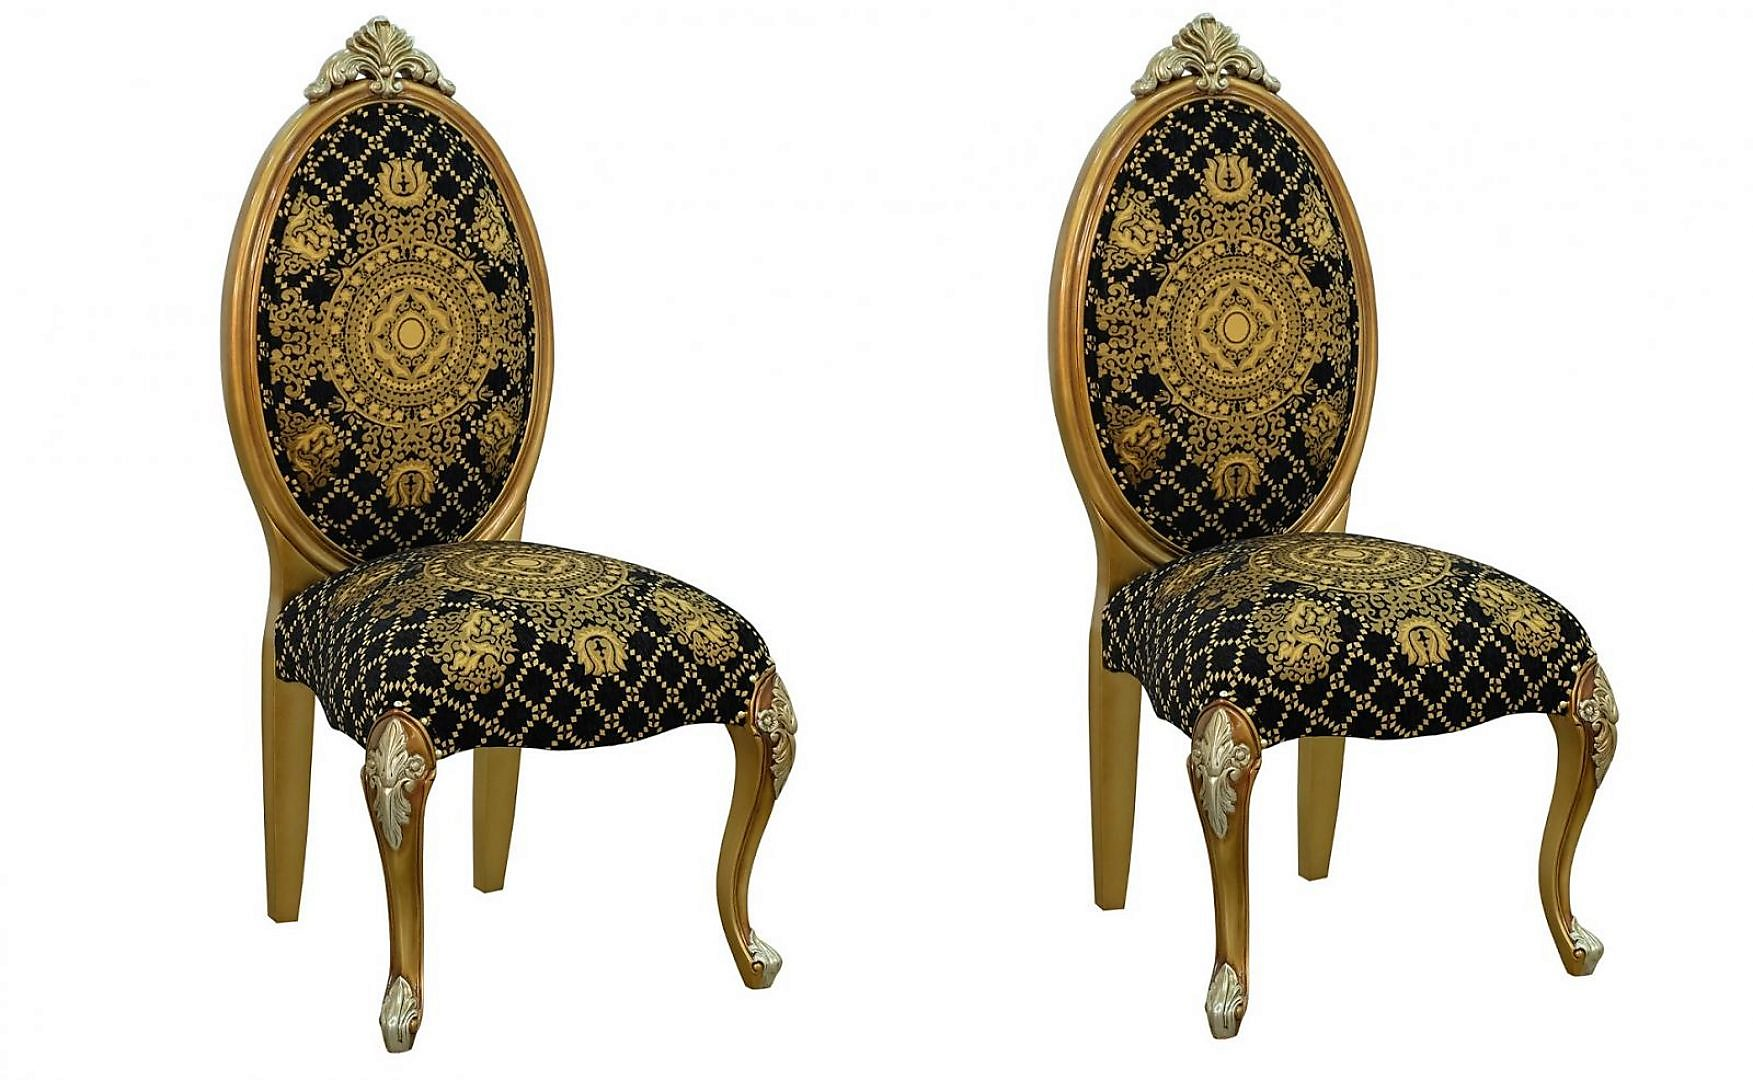 Classic, Traditional Black, Gold, Silver Fabric and Wood, Solid Hardwood Dining Chair Set 2 pcs EMPERADOR by European Furniture